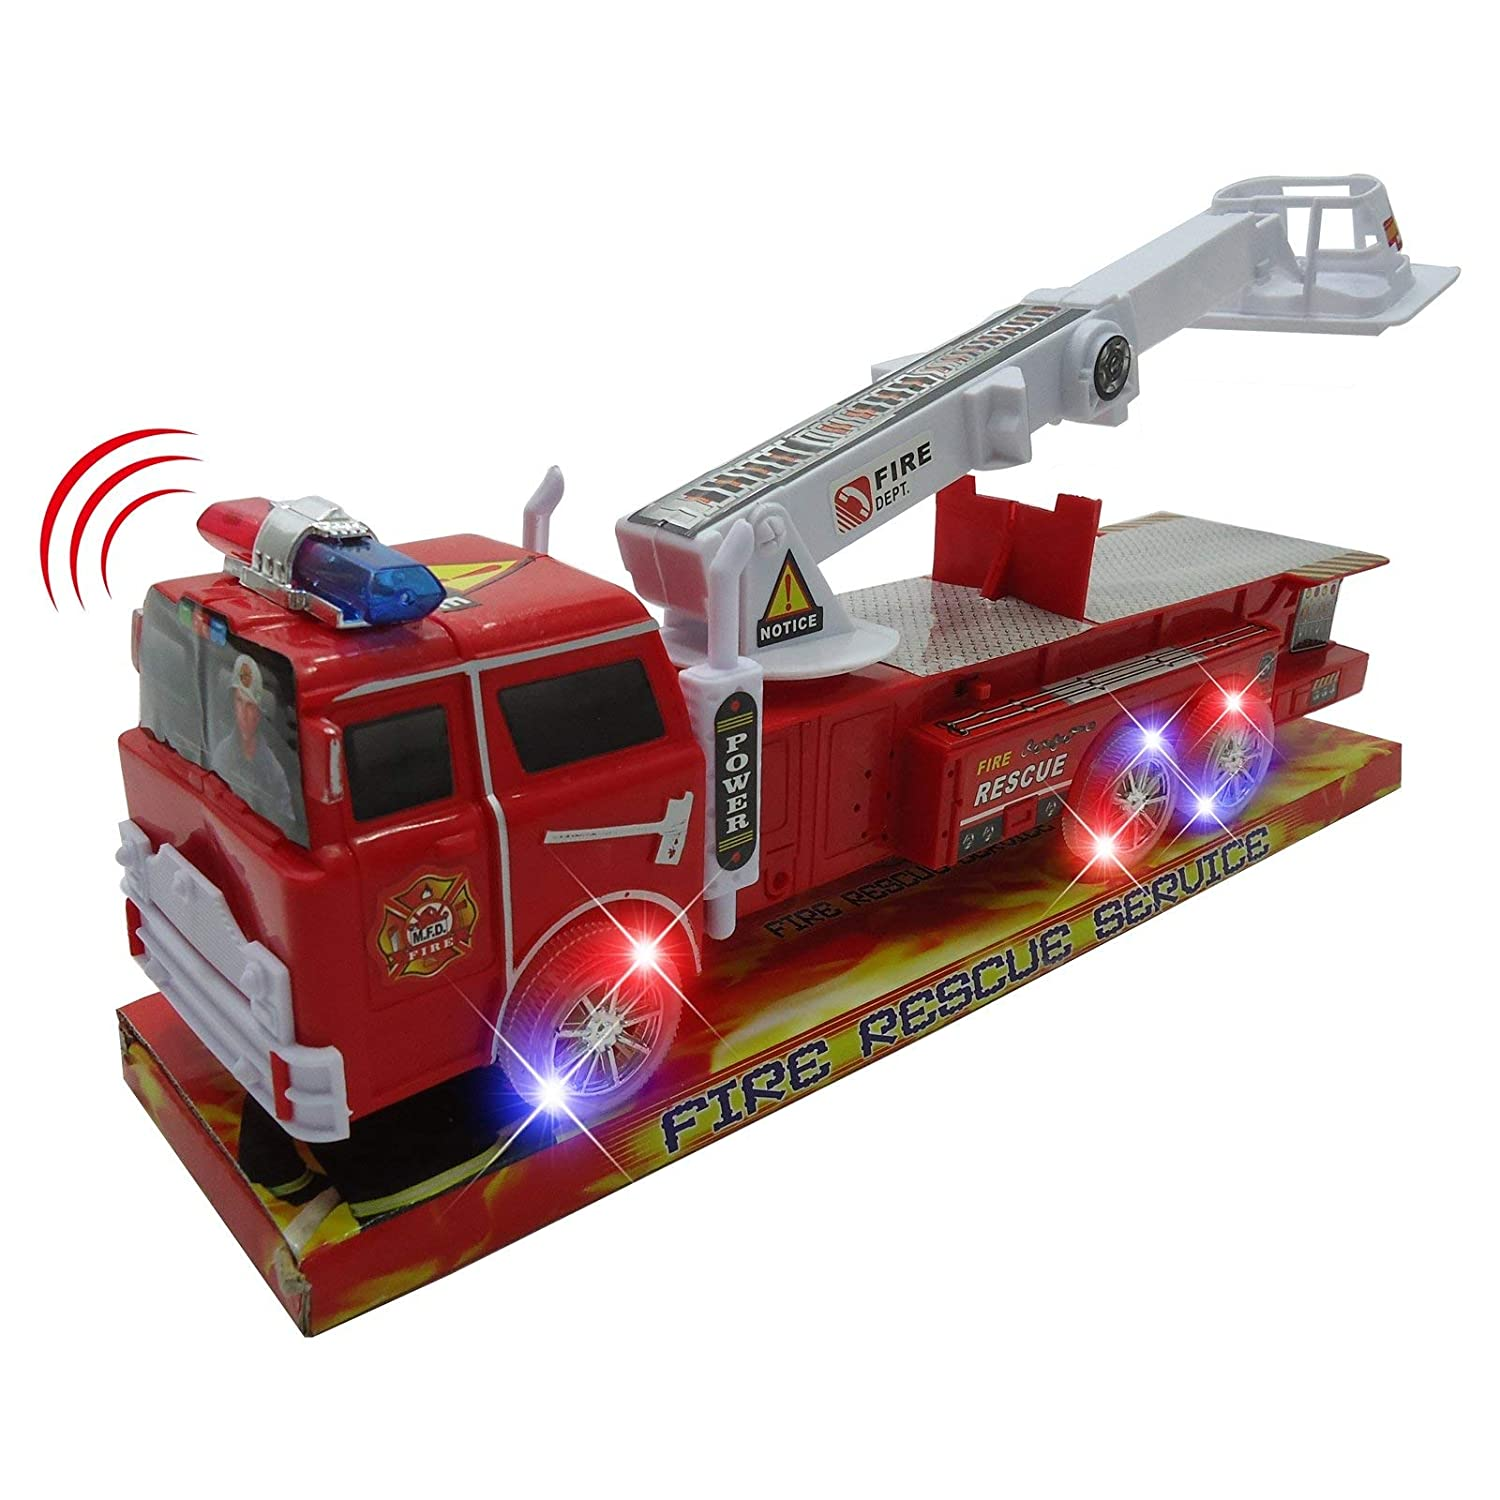 Kidplay Kids Light Up Fire Truck Rescueエンジンwithユーティリティベンチ14インチおもちゃ B078Z3CD2S